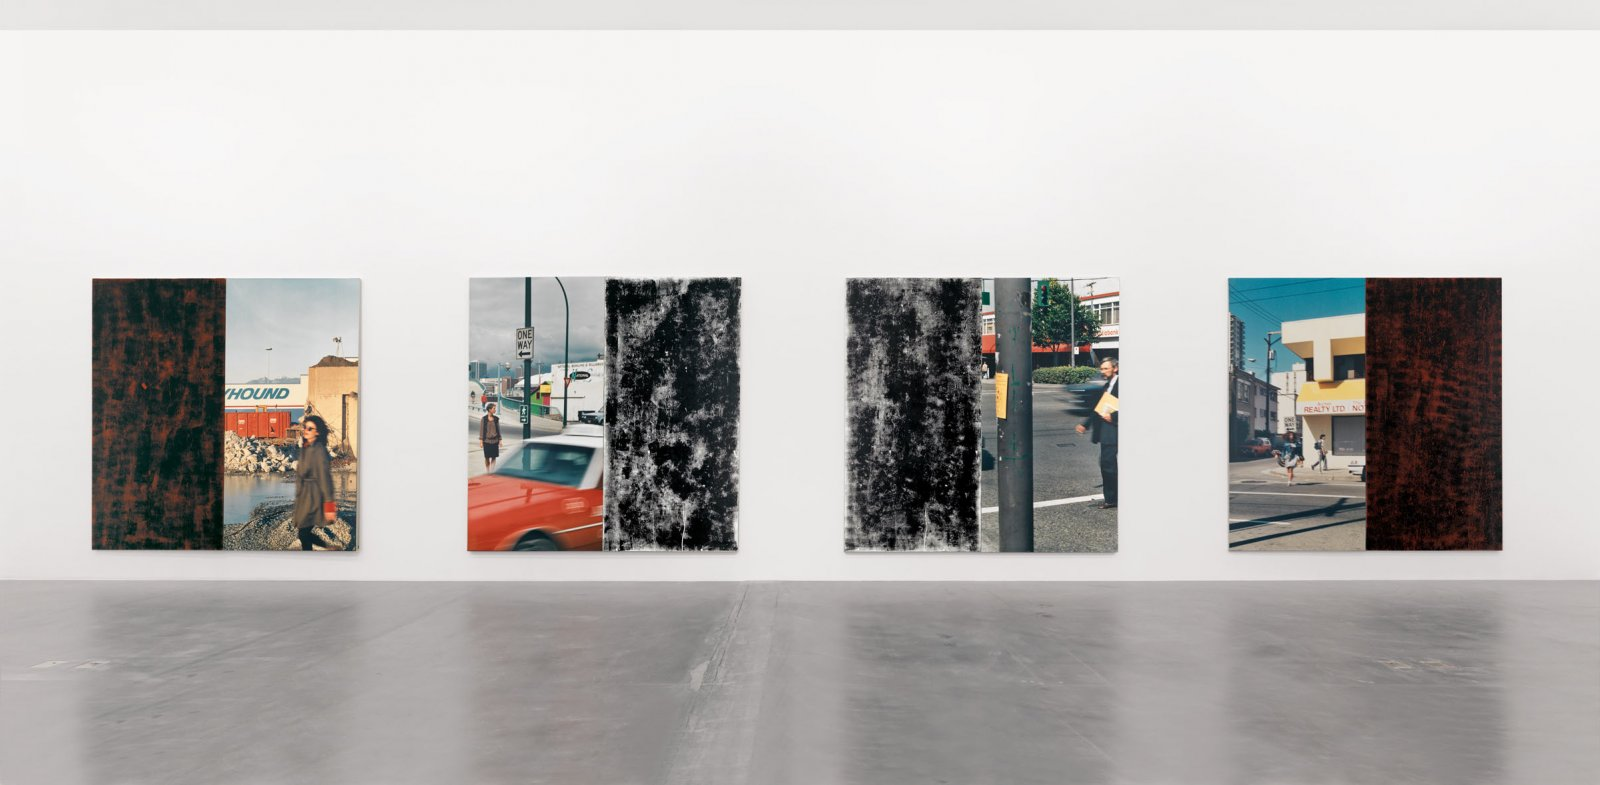 Ian Wallace, In the Street I–IV, 1989, 4 photolaminate with acrylic and ink monoprint on canvas panels, each 96 x 96 in. (244 x 244 cm)